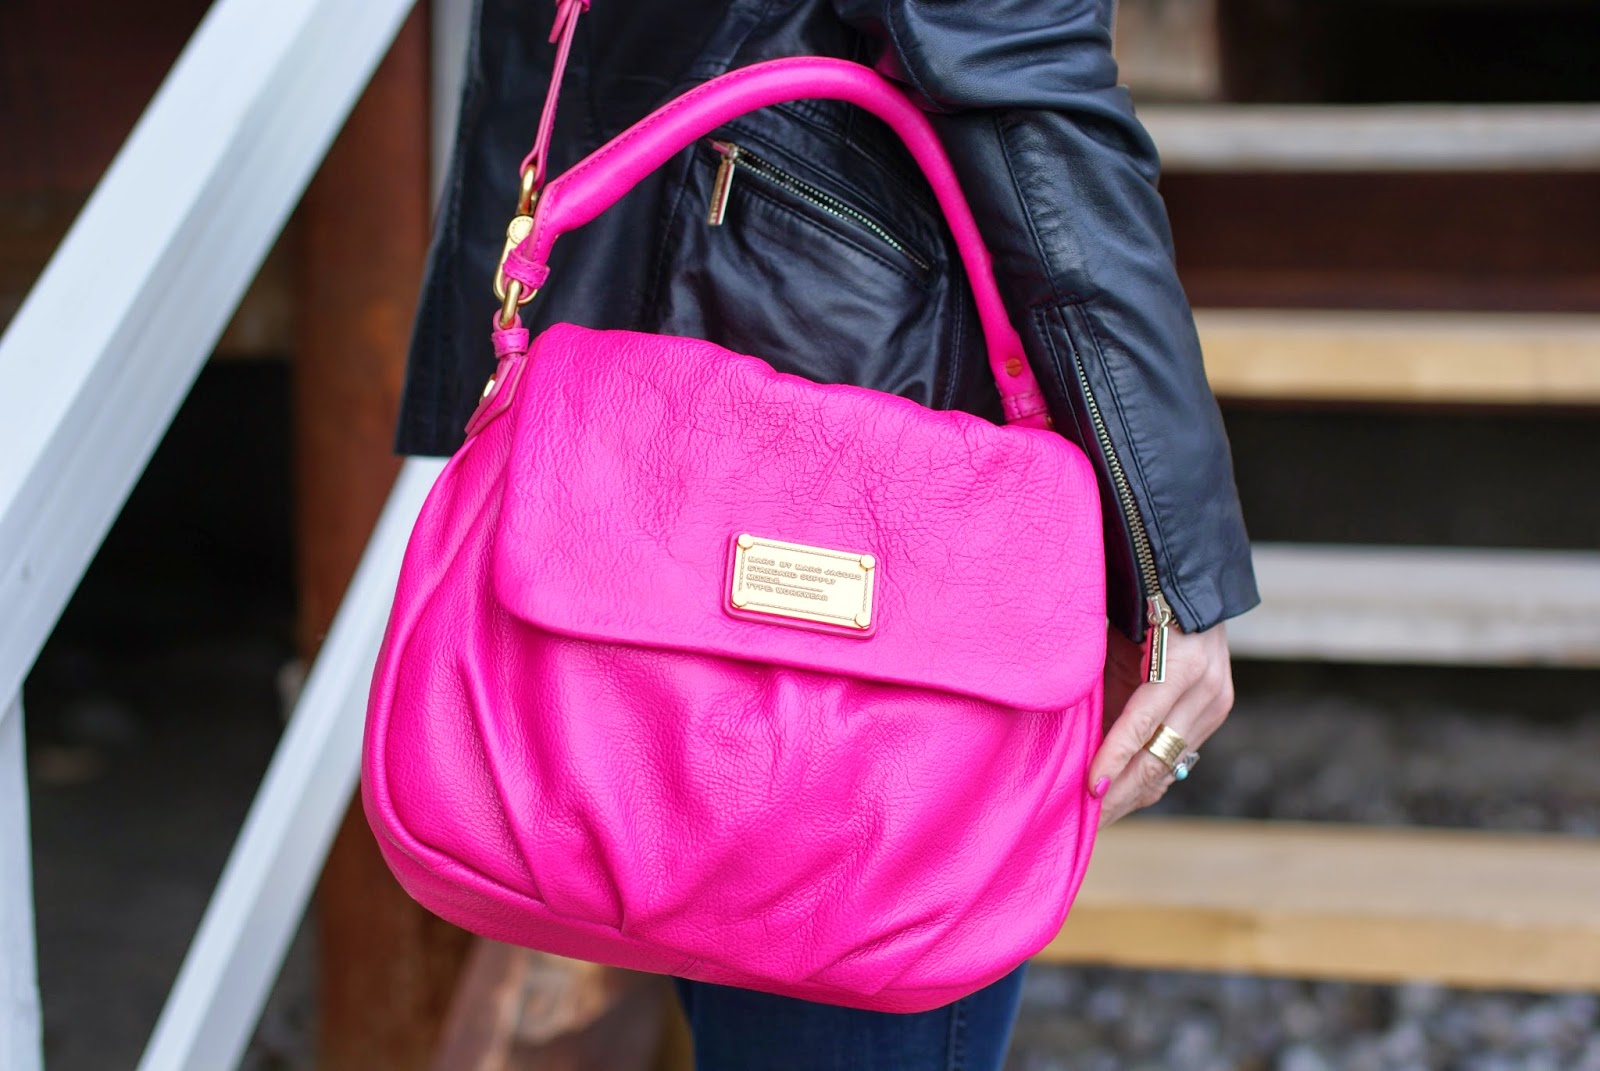 Marc by Marc Jacobs lil ukita pop pink bag, Fashion and Cookies, fashion blogger